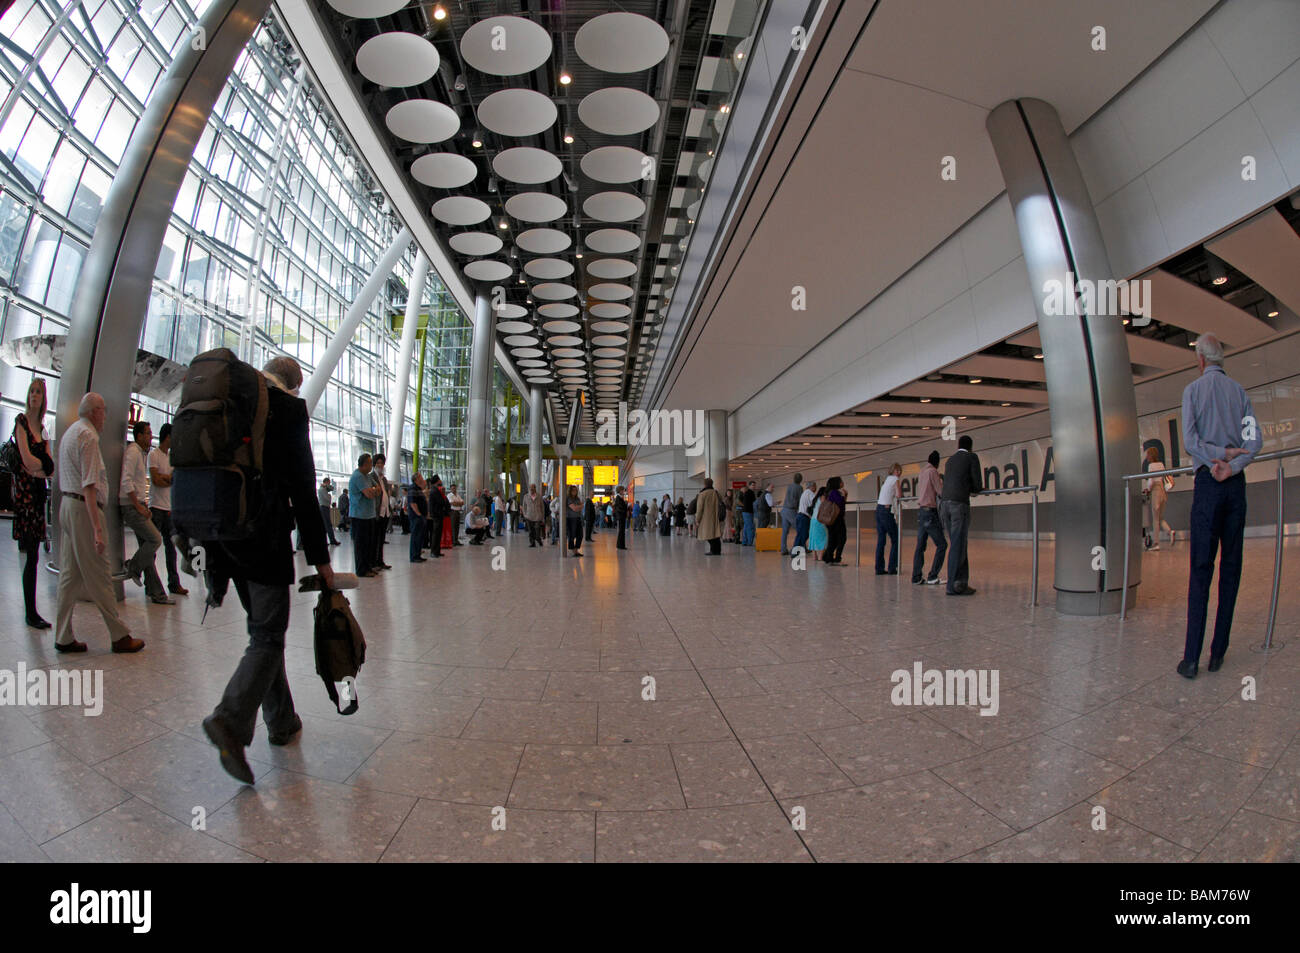 Arrivals London Heathrow Terminal 5 - Stock Image